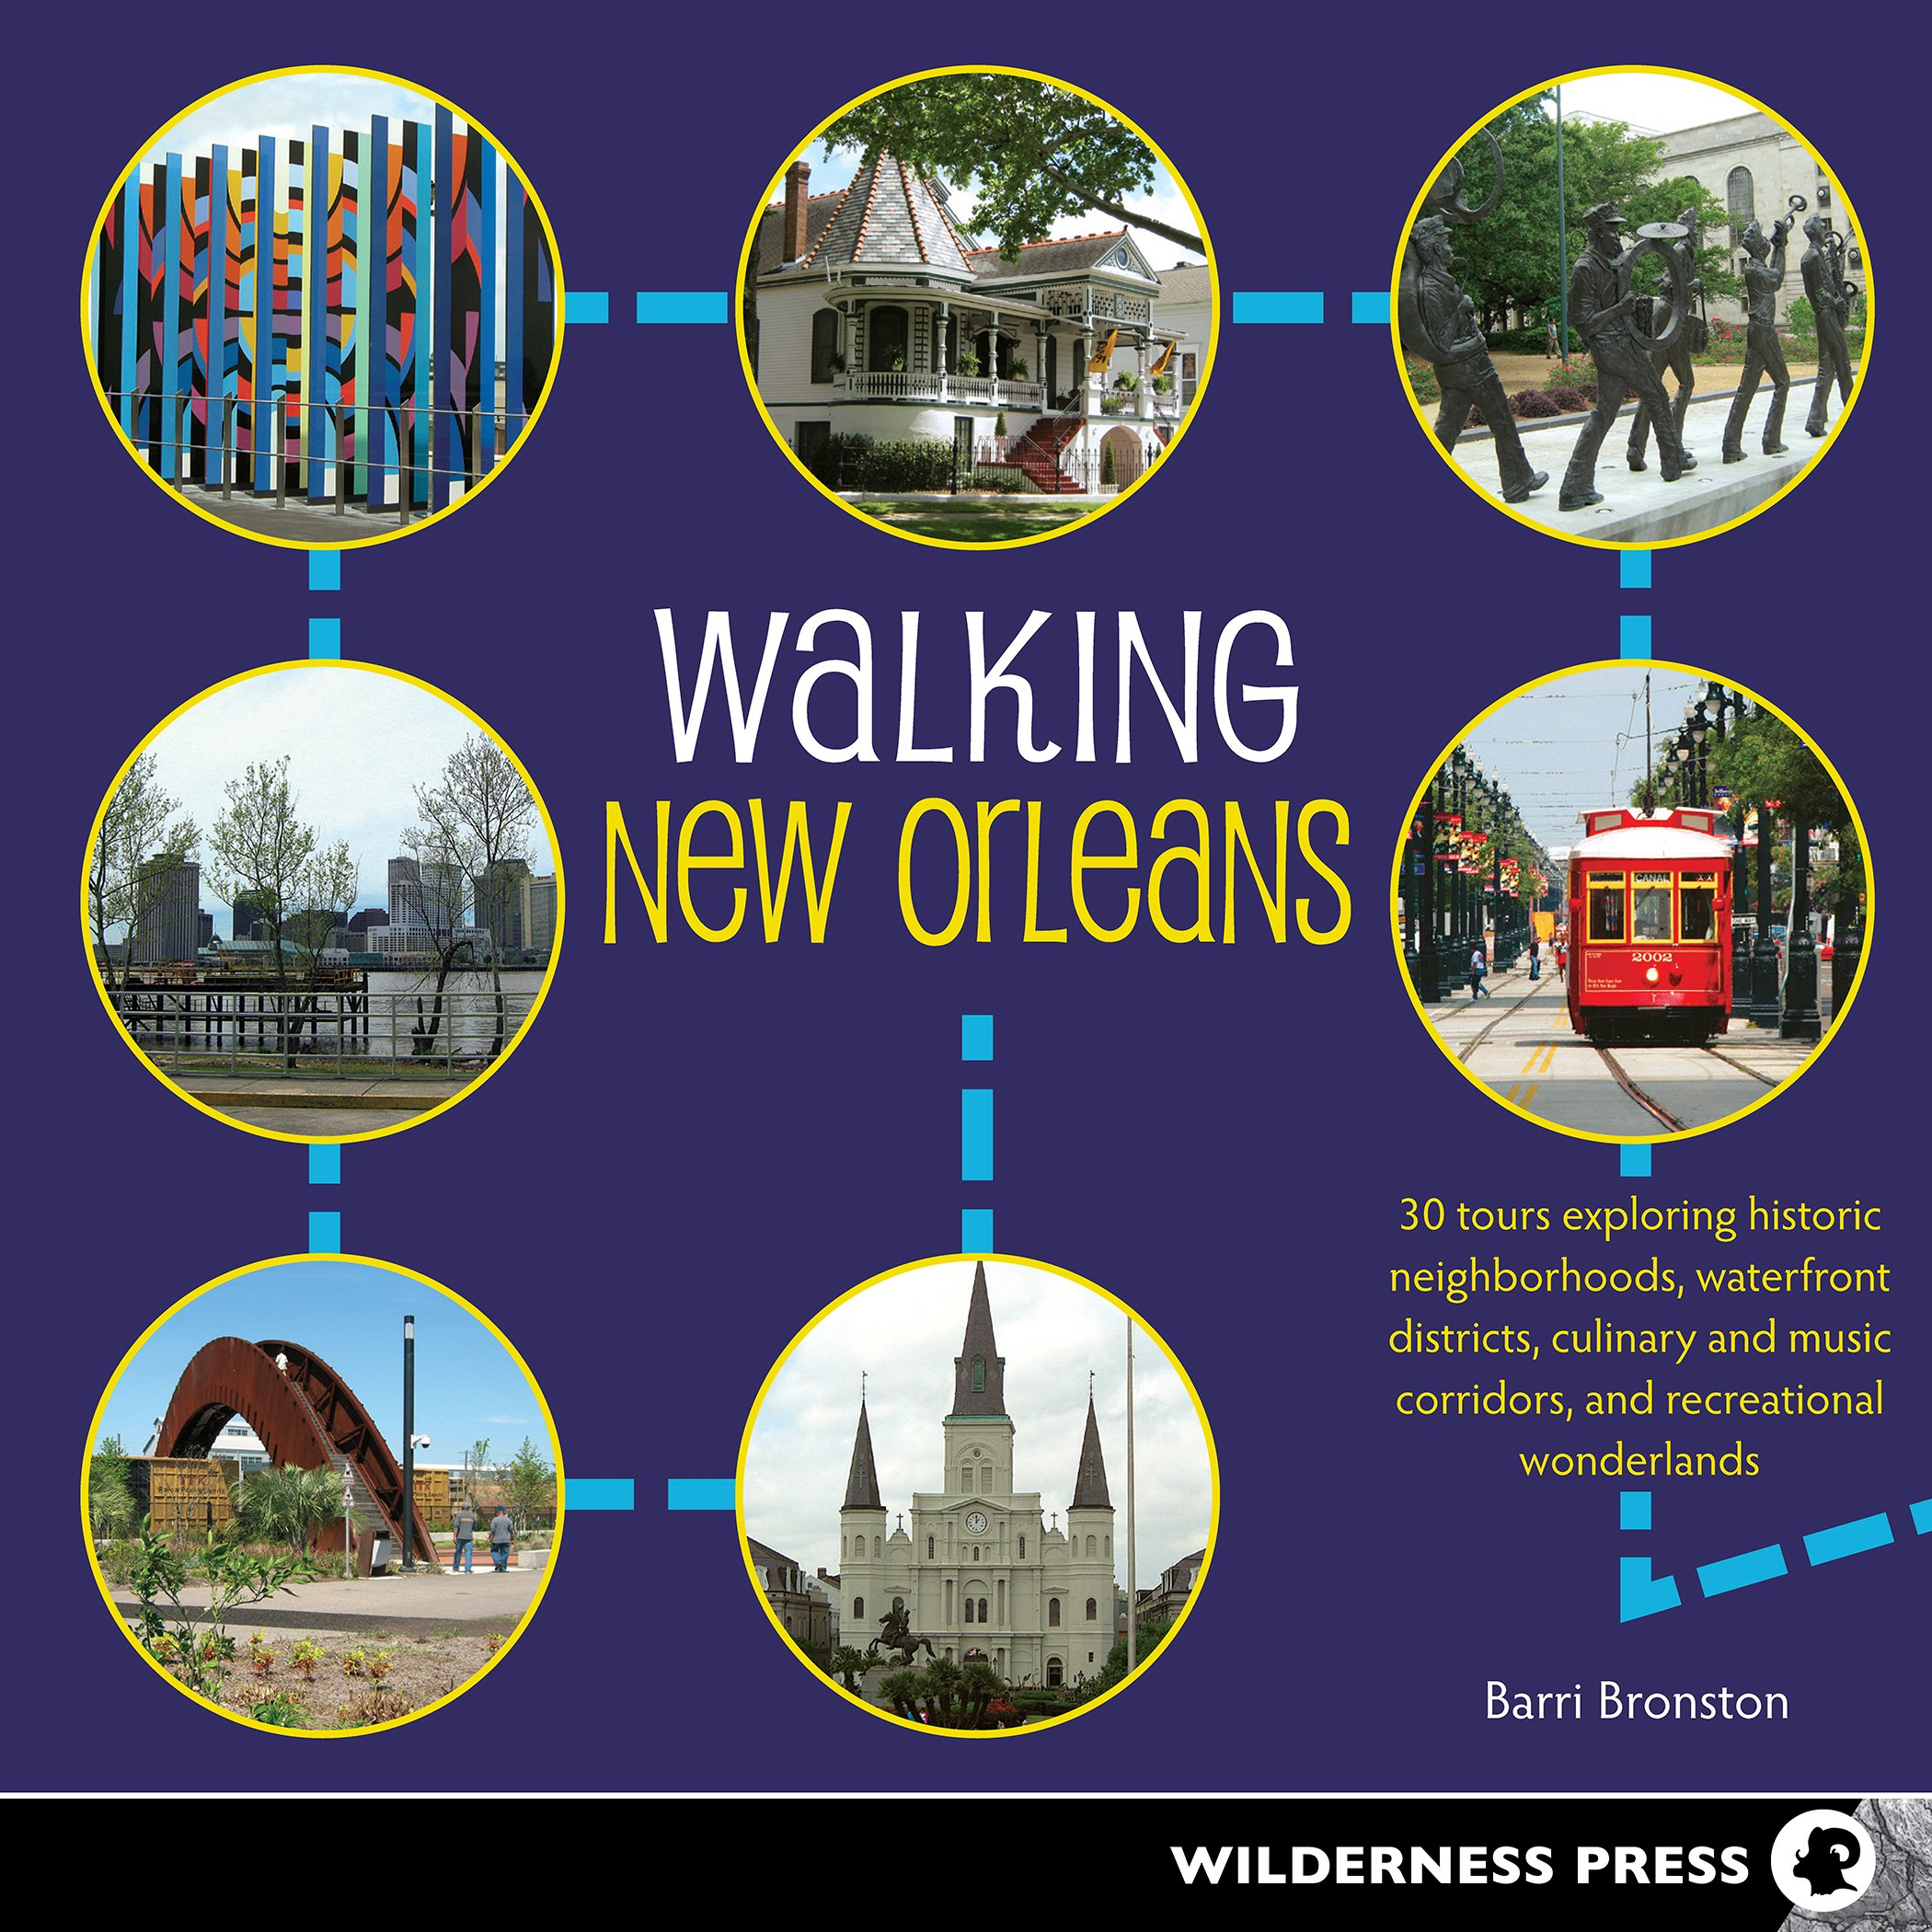 Download Walking New Orleans: 30 Tours Exploring Historic Neighborhoods, Waterfront Districts, Culinary and Music Corridors, and Recreational Wonderlands PDF